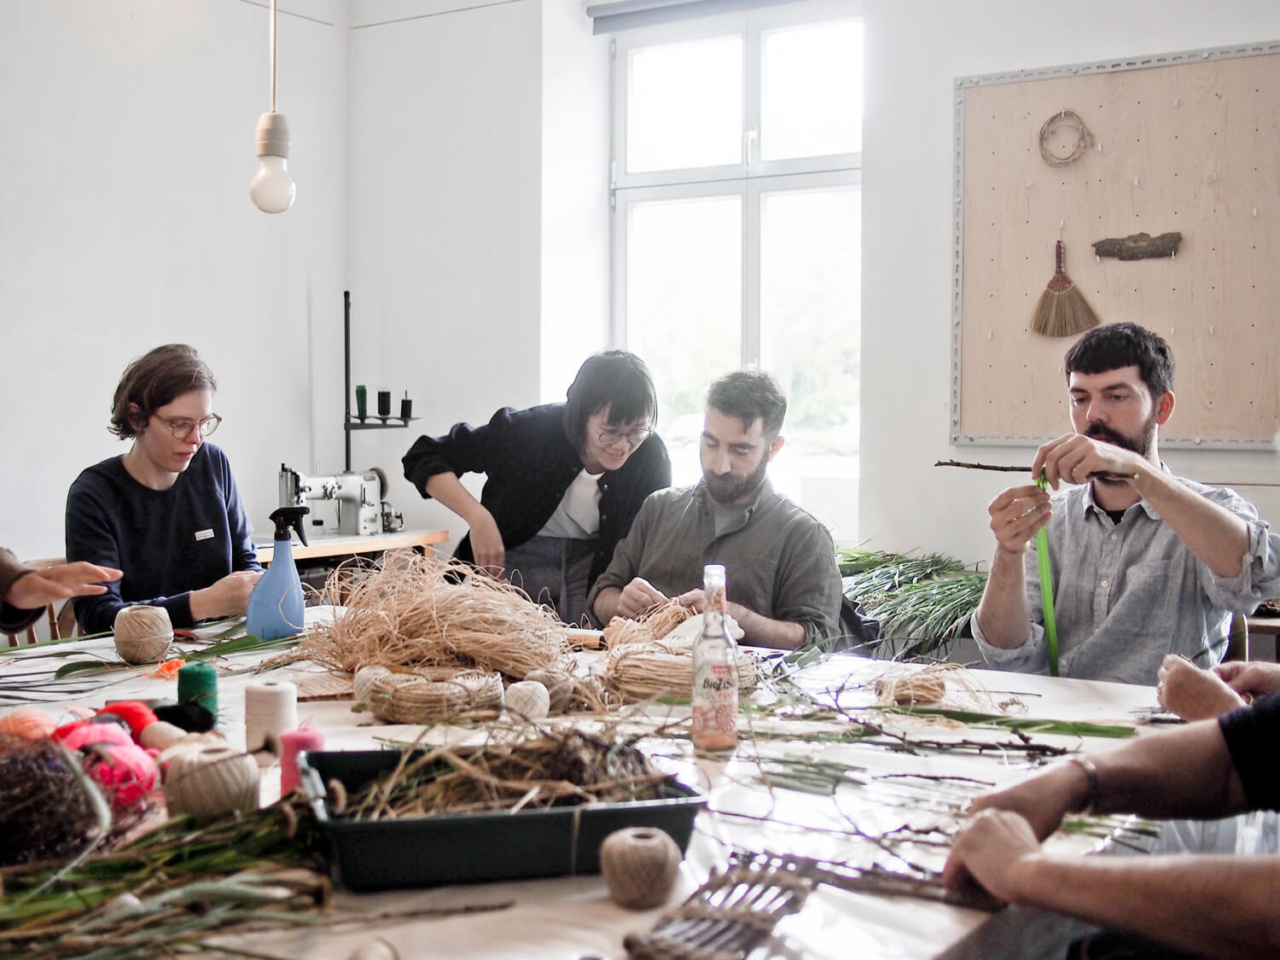 futurprimitiv 2019 — Crafts Making Experiences & Projects